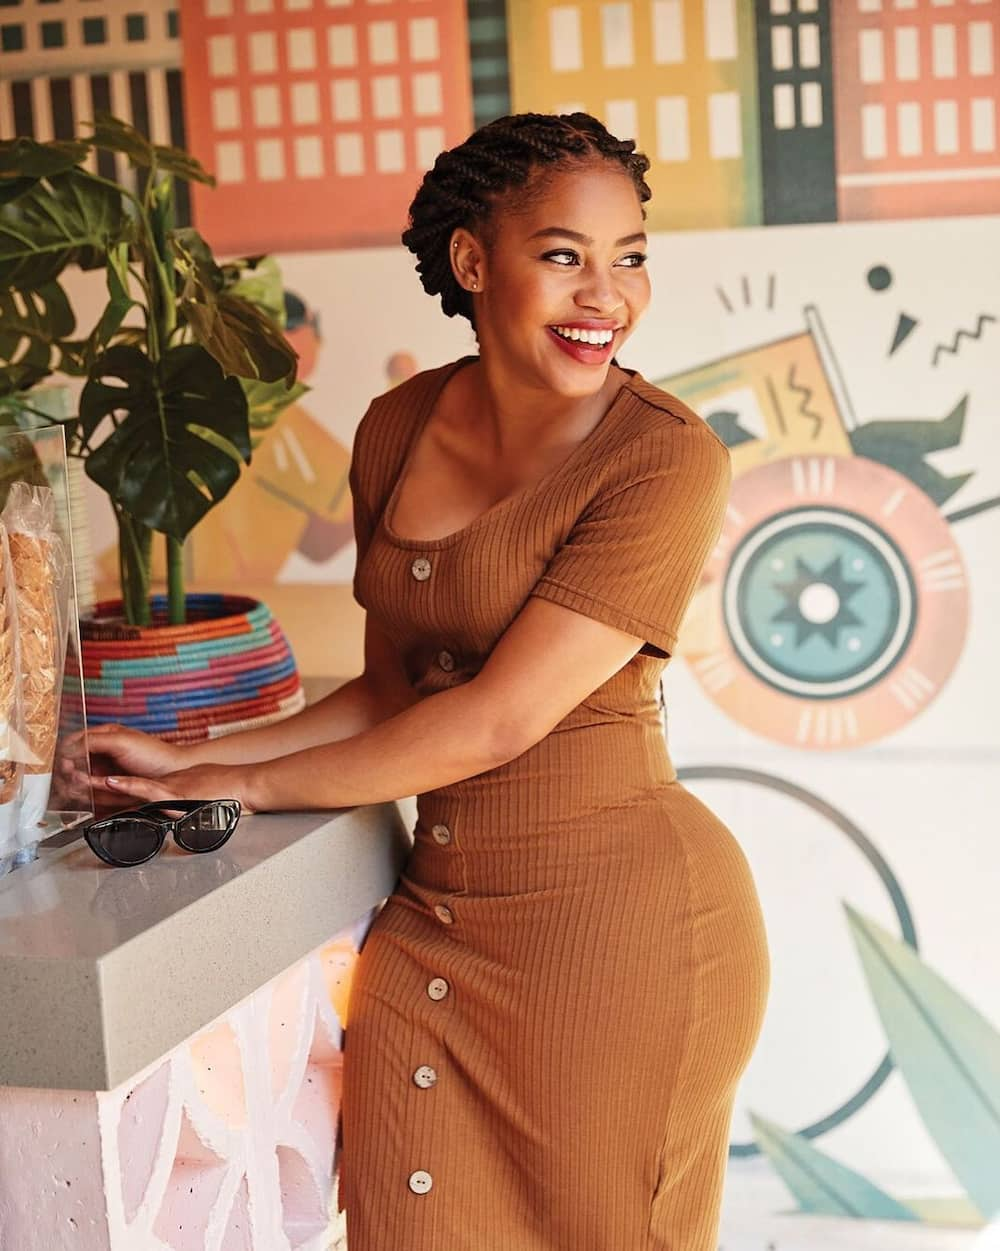 South African celebrities with natural curves